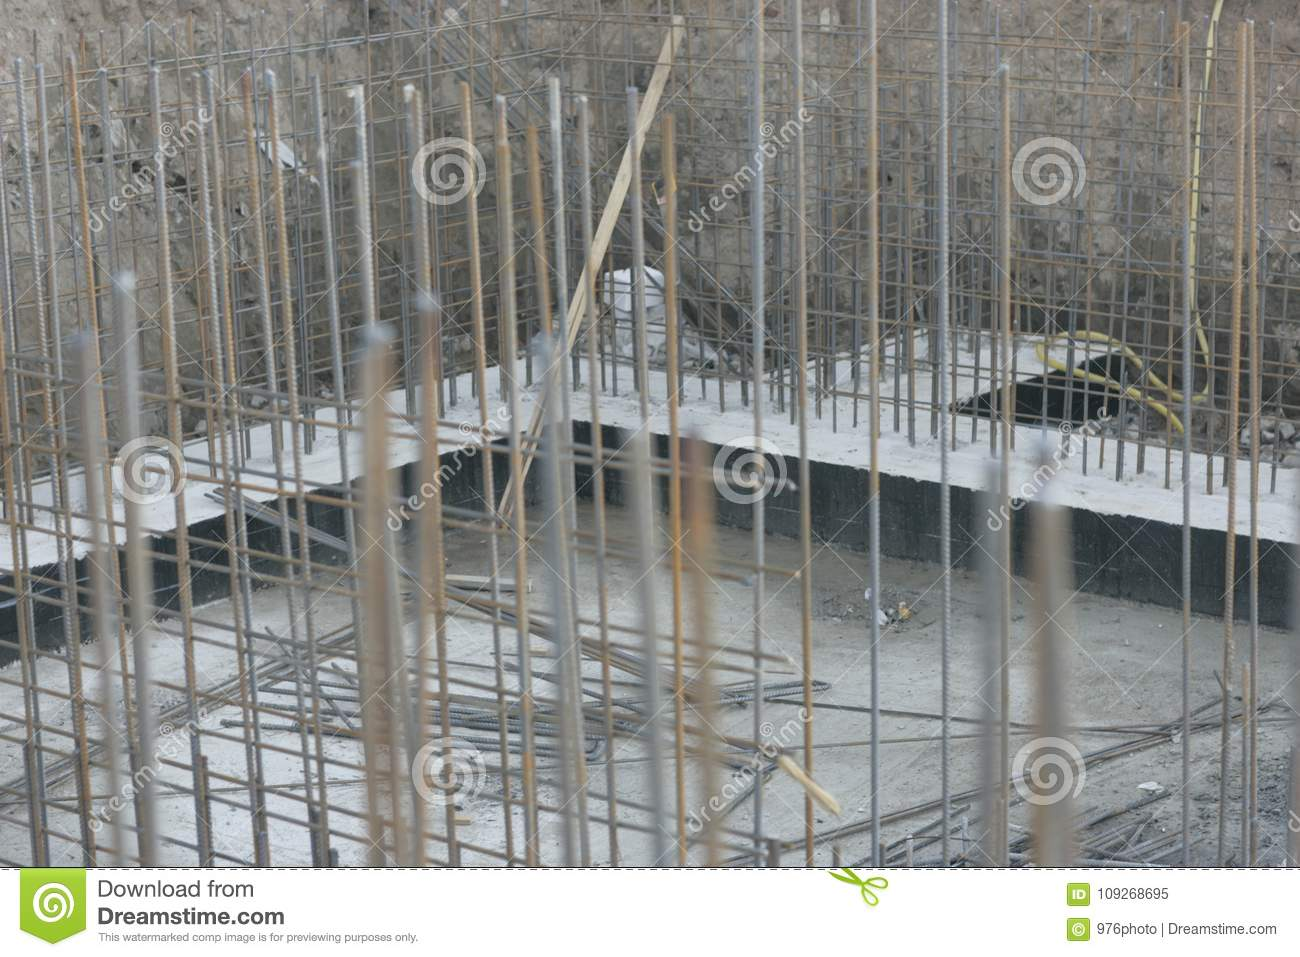 Foundation Site Of New Building Stock Image - Image of iron ...